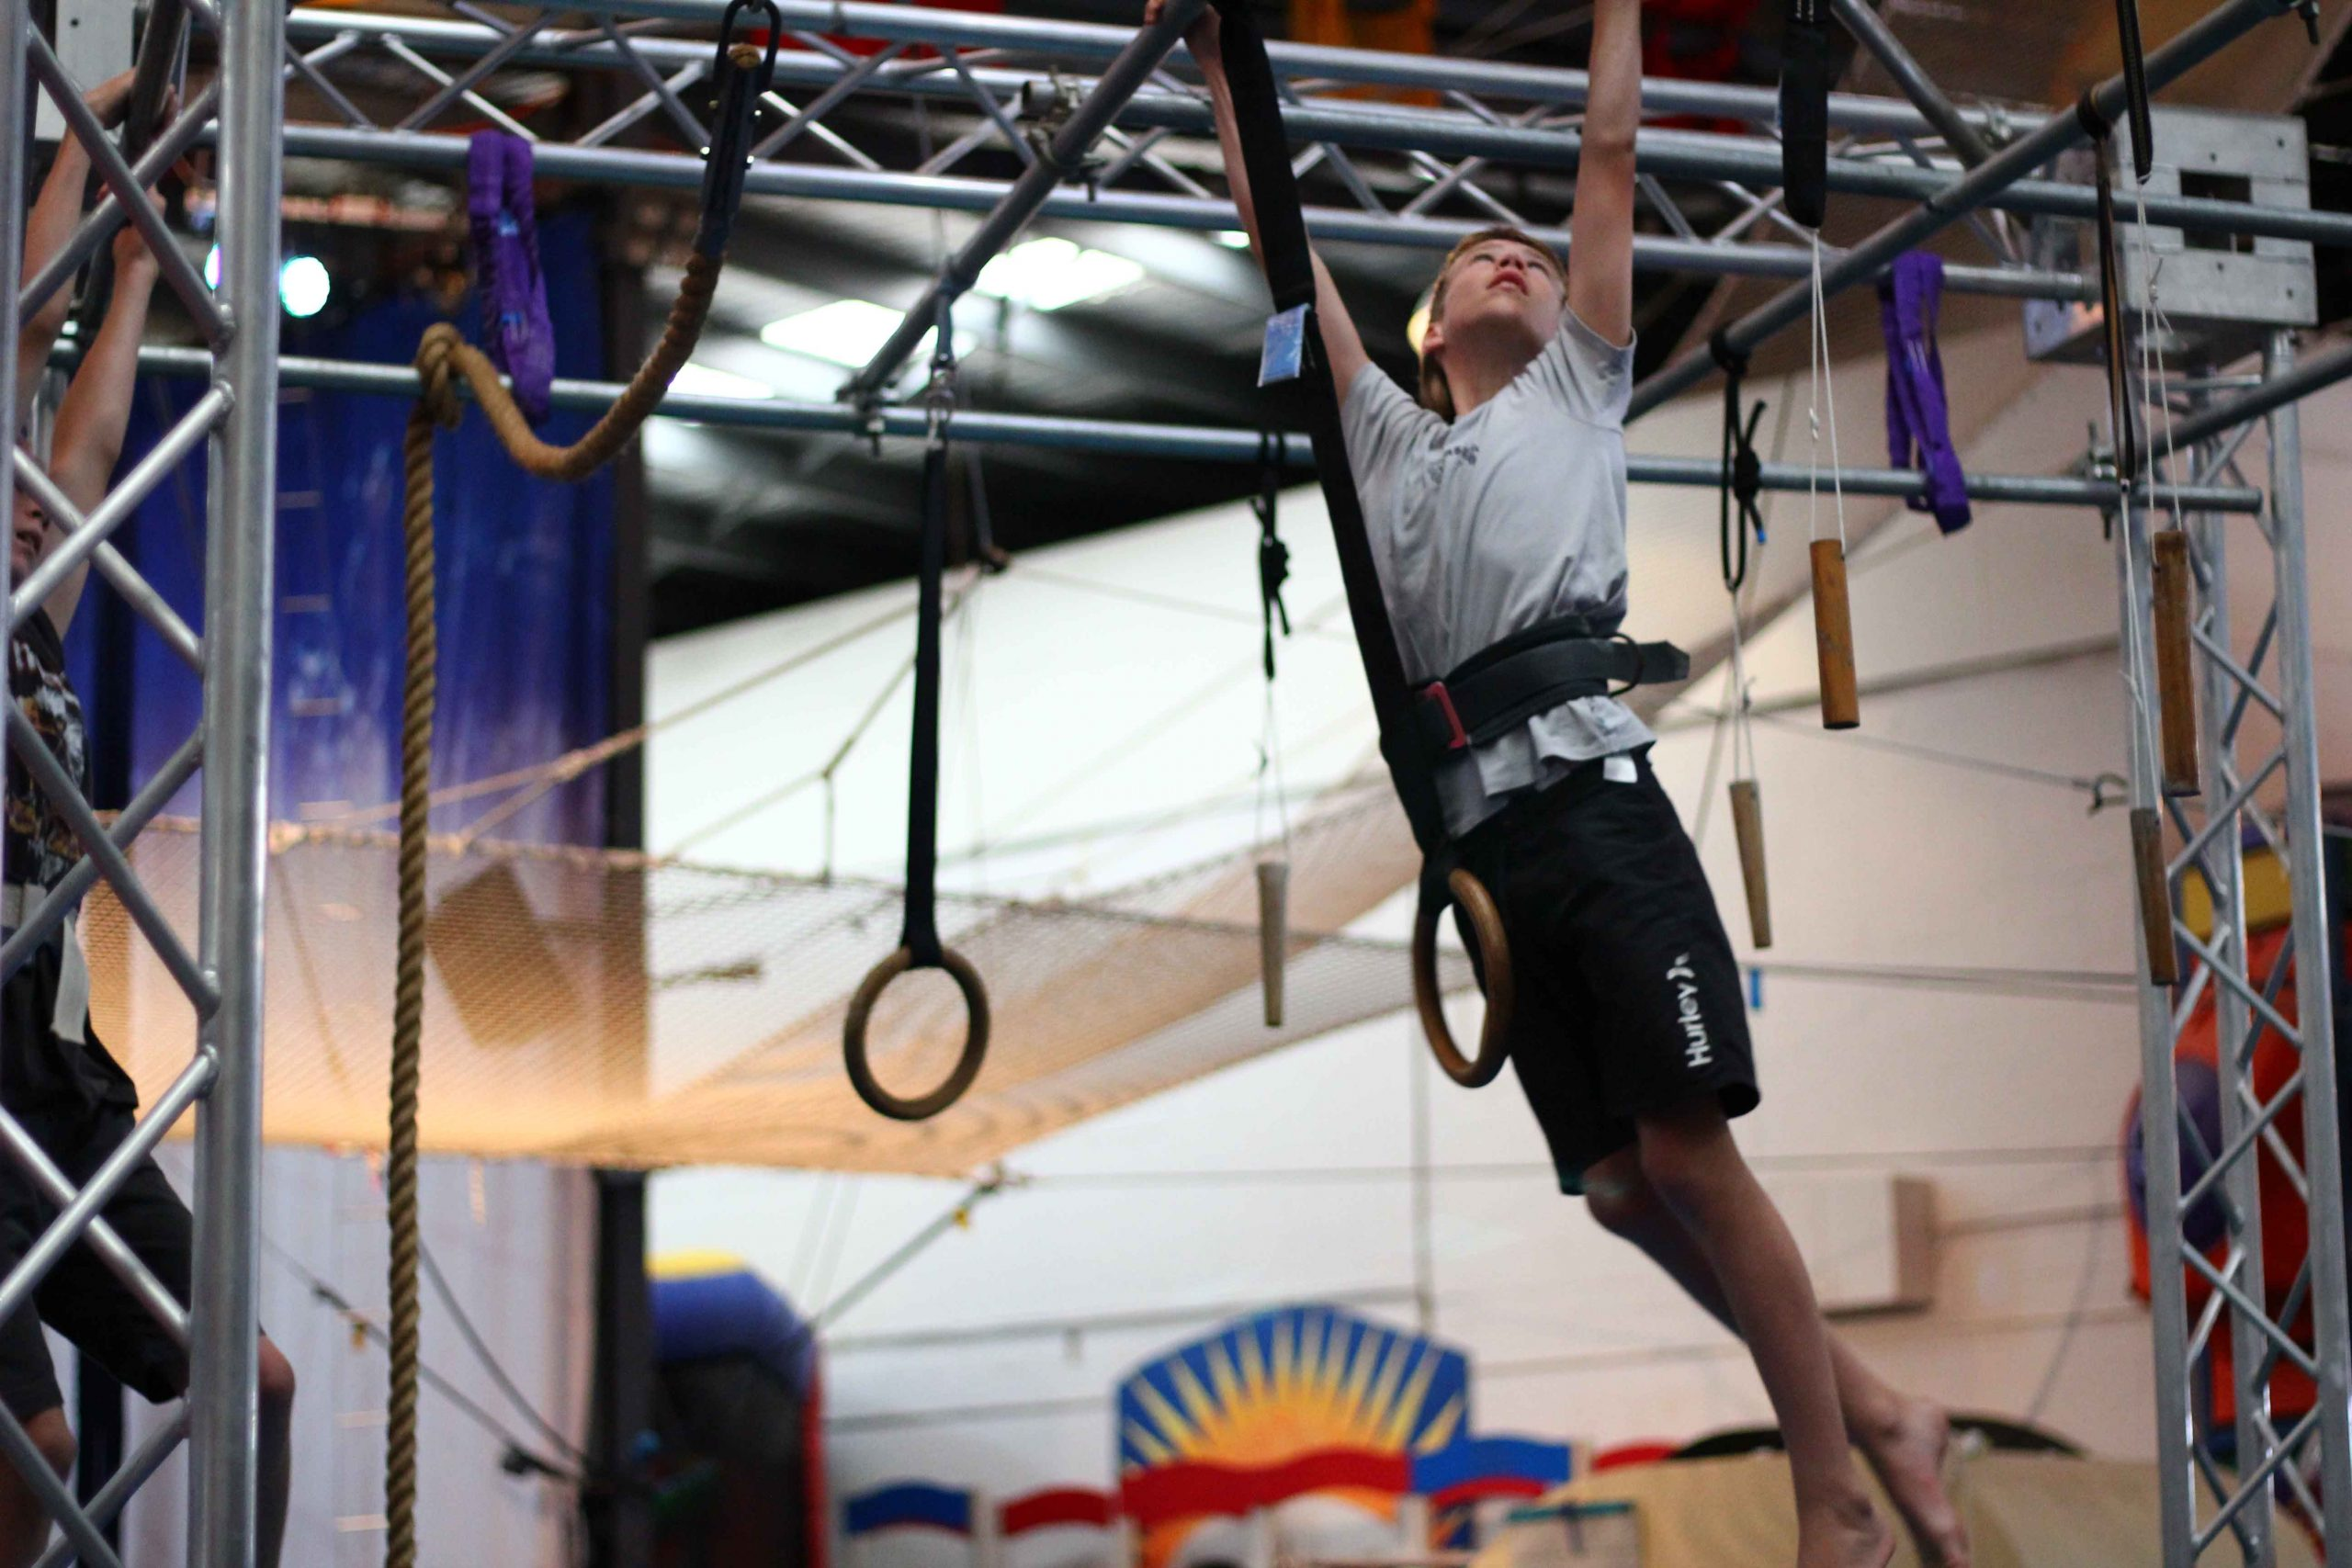 circus-arts-byron-bay-kids-teens-classes-ninja-parkour-5